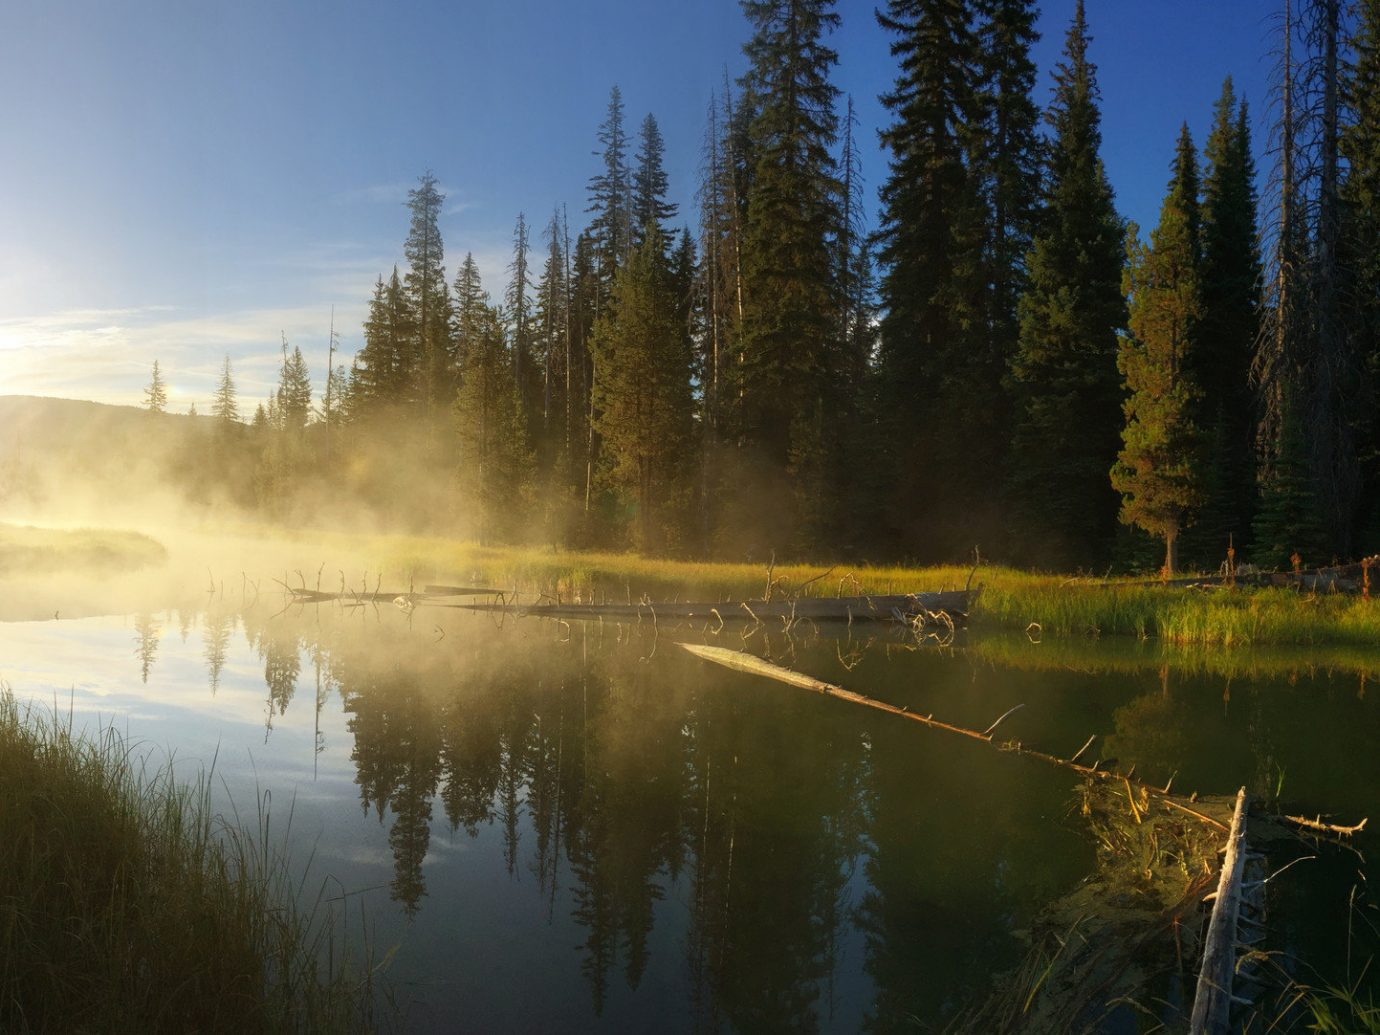 Fall Travel Mountains + Skiing National Parks Outdoors + Adventure Trip Ideas tree outdoor sky Nature reflection water Lake morning atmosphere sunlight bank pond River water resources evening biome wetland grass landscape dawn Forest computer wallpaper mist water feature meadow day